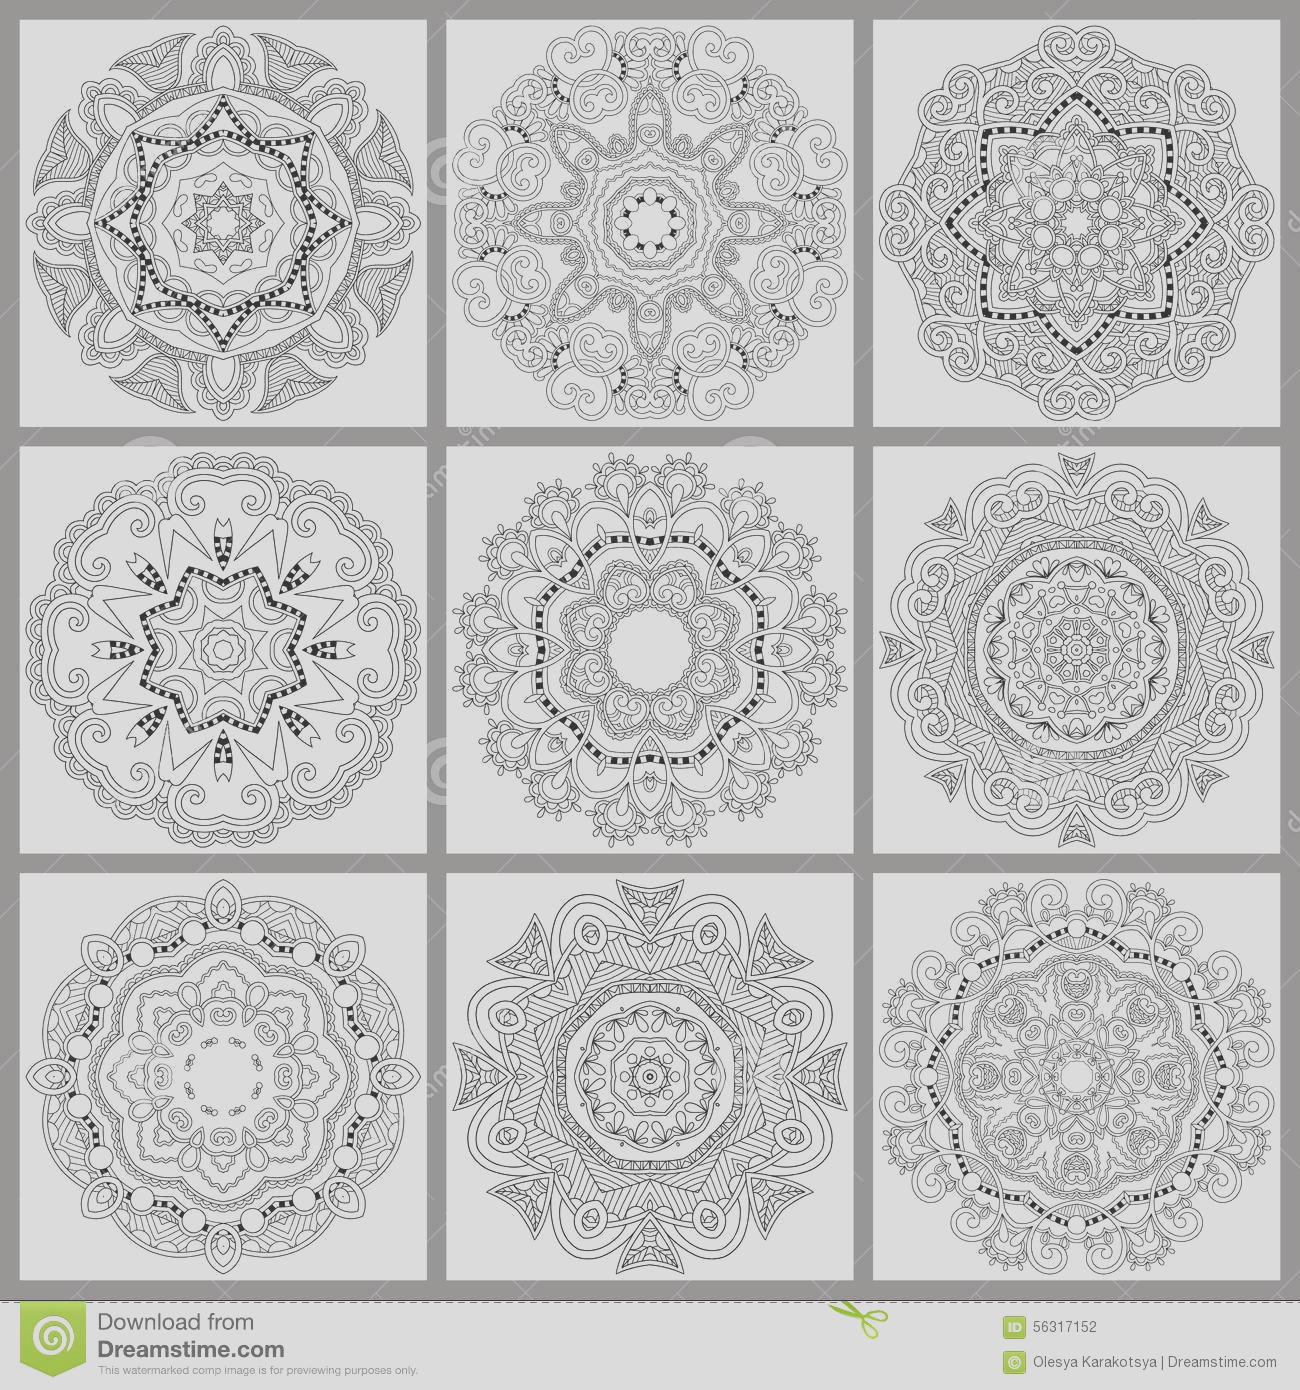 stock illustration unique coloring book square page adults floral authentic circle design joy to older children adult colorists who like line image